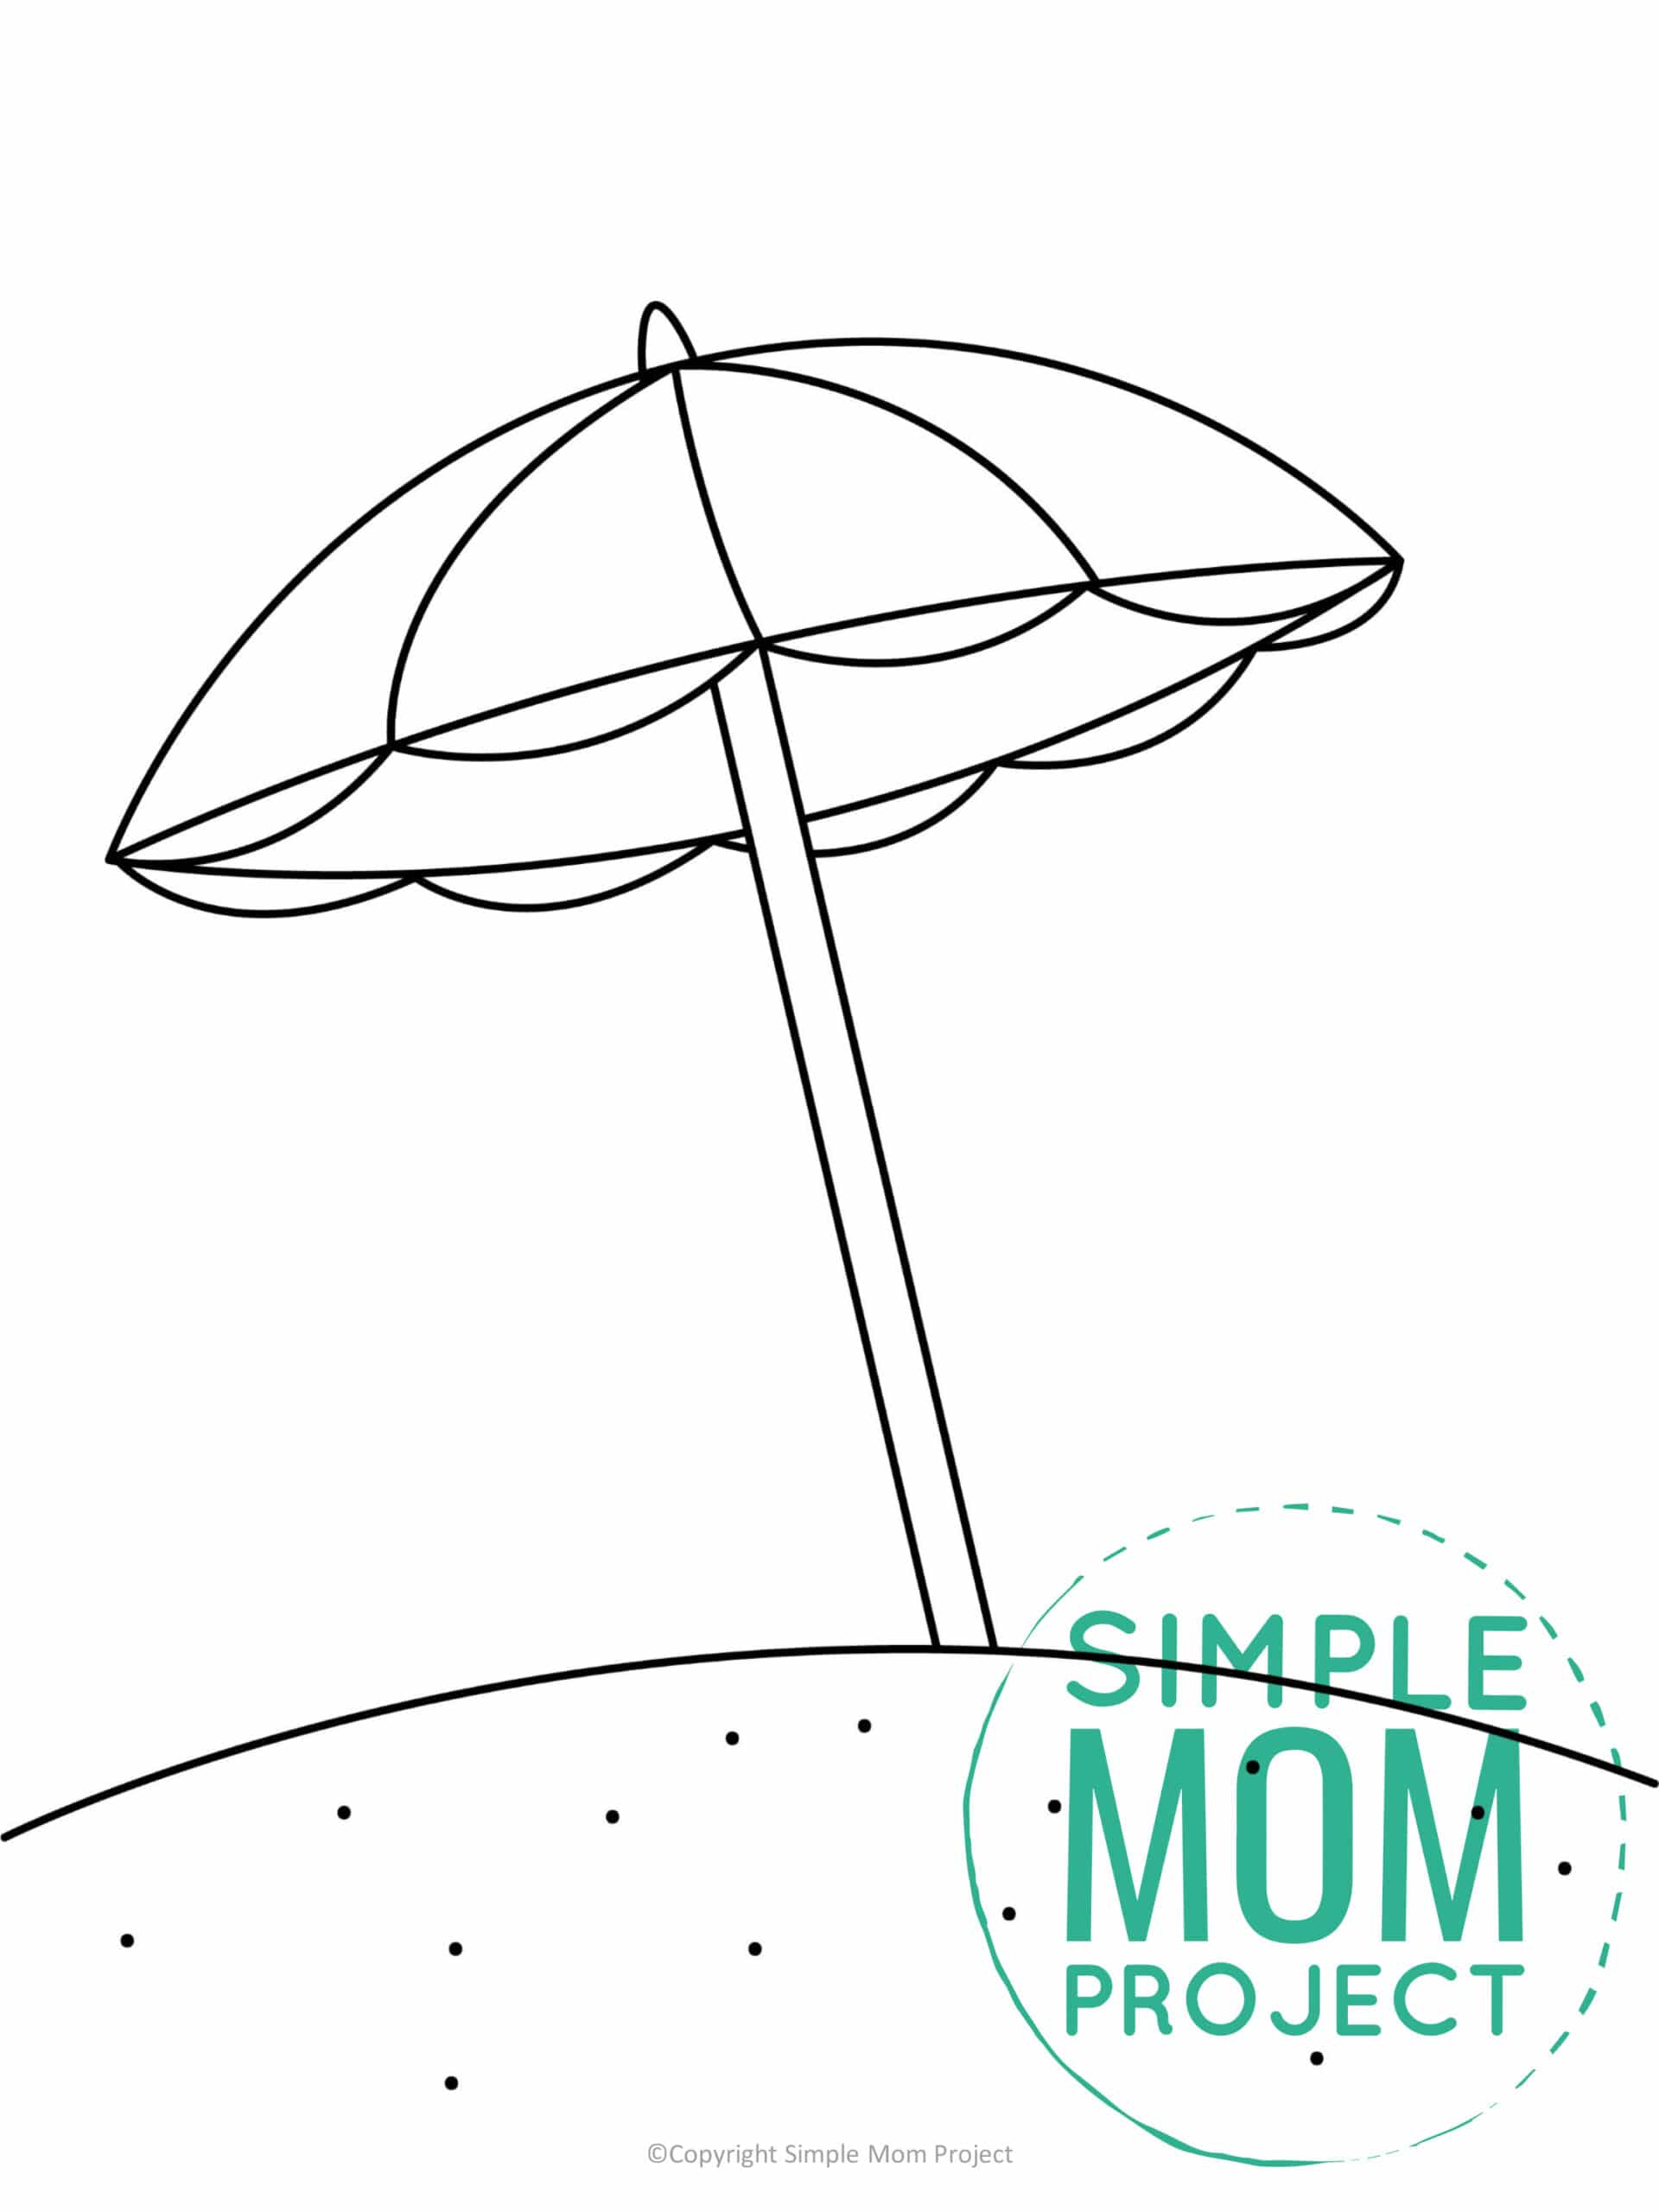 printable beach umbrella template for kids, preschoolers, and toddlers